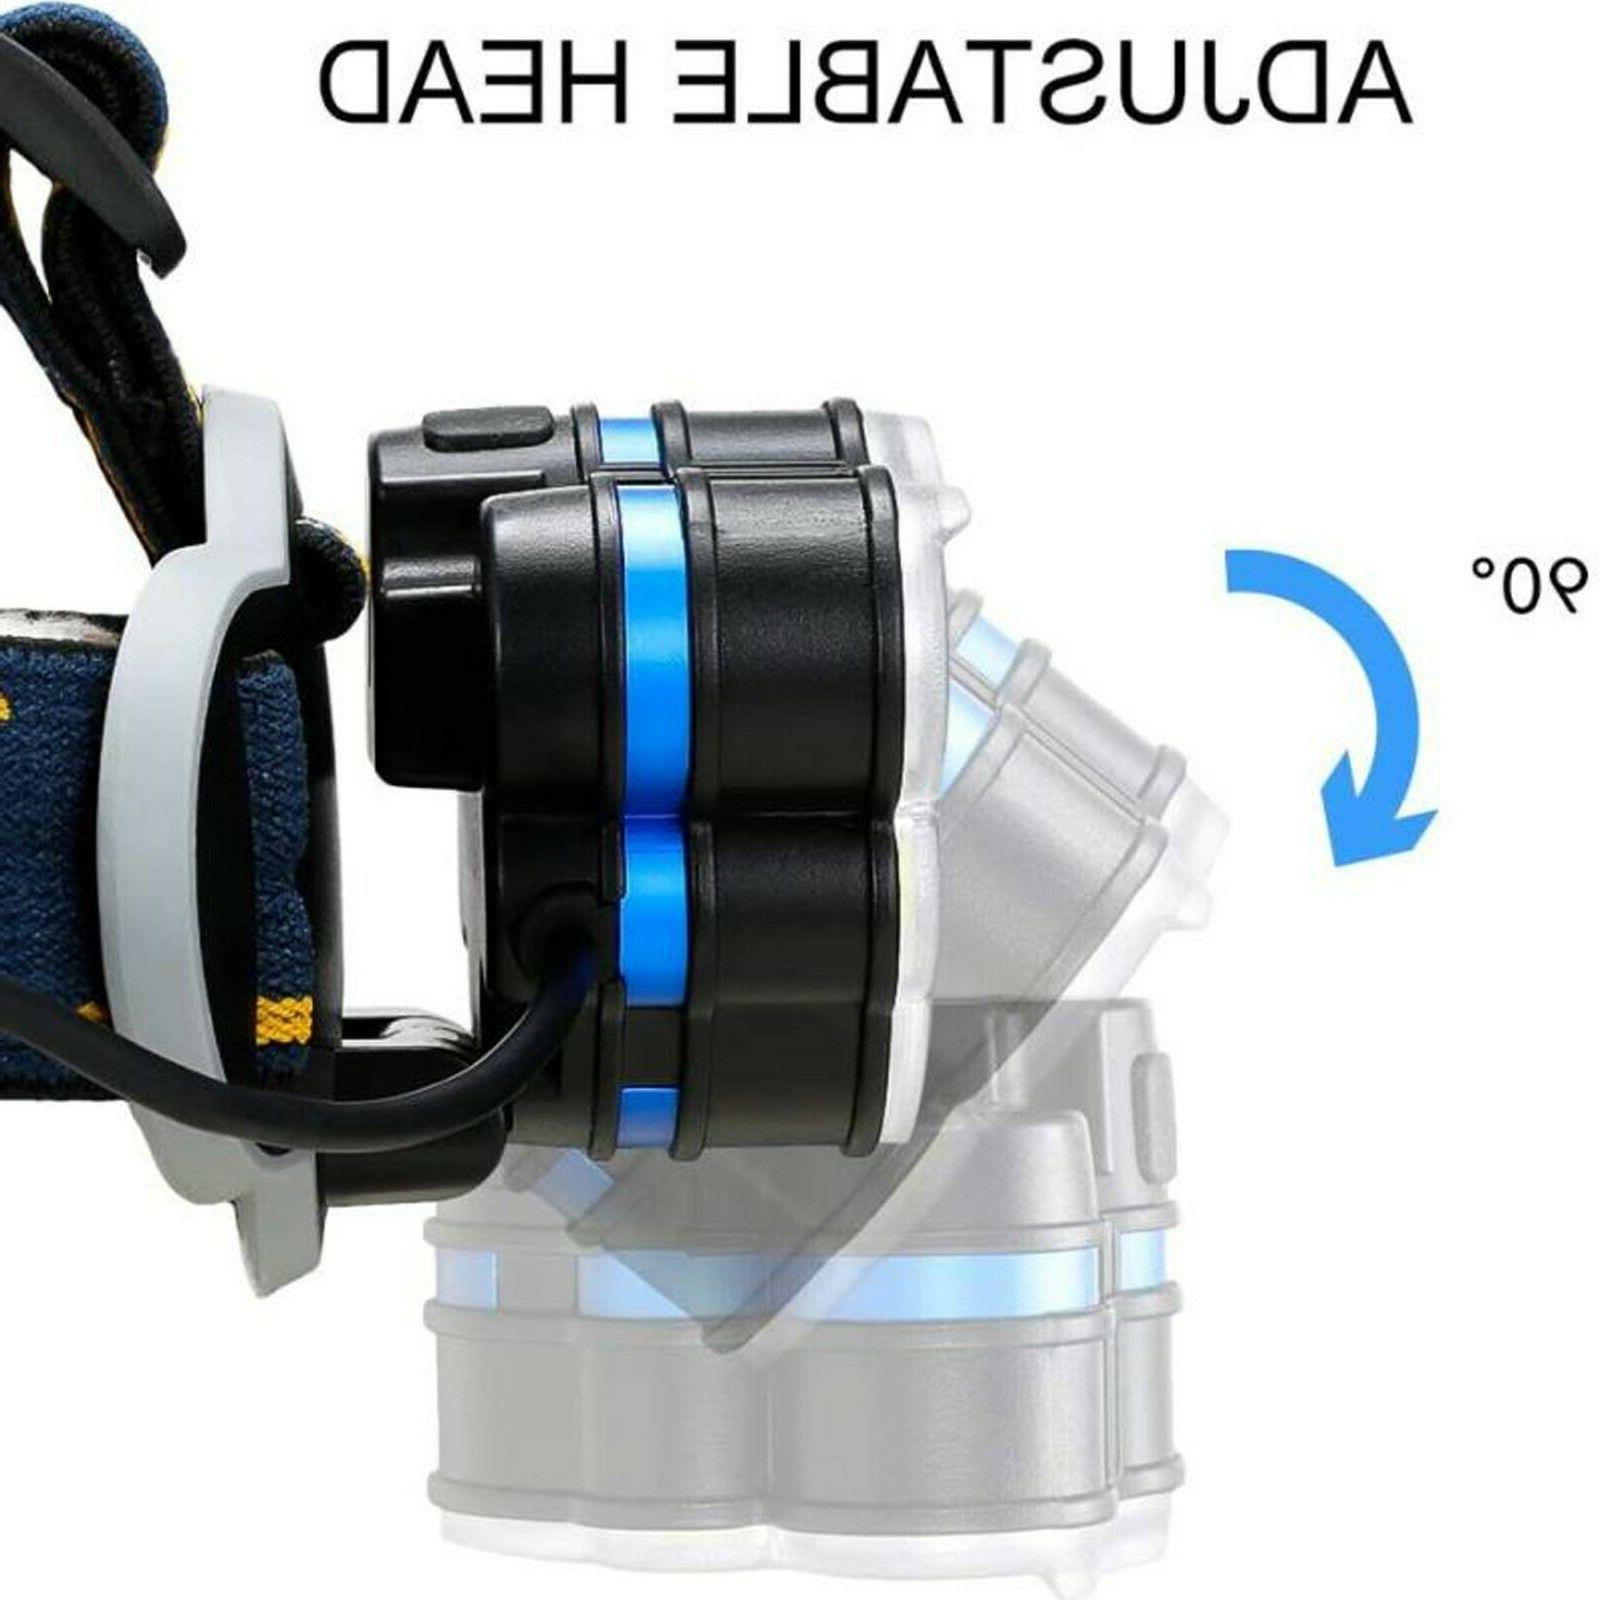 750000LM 5X Headlamp Head Flashlight Torch